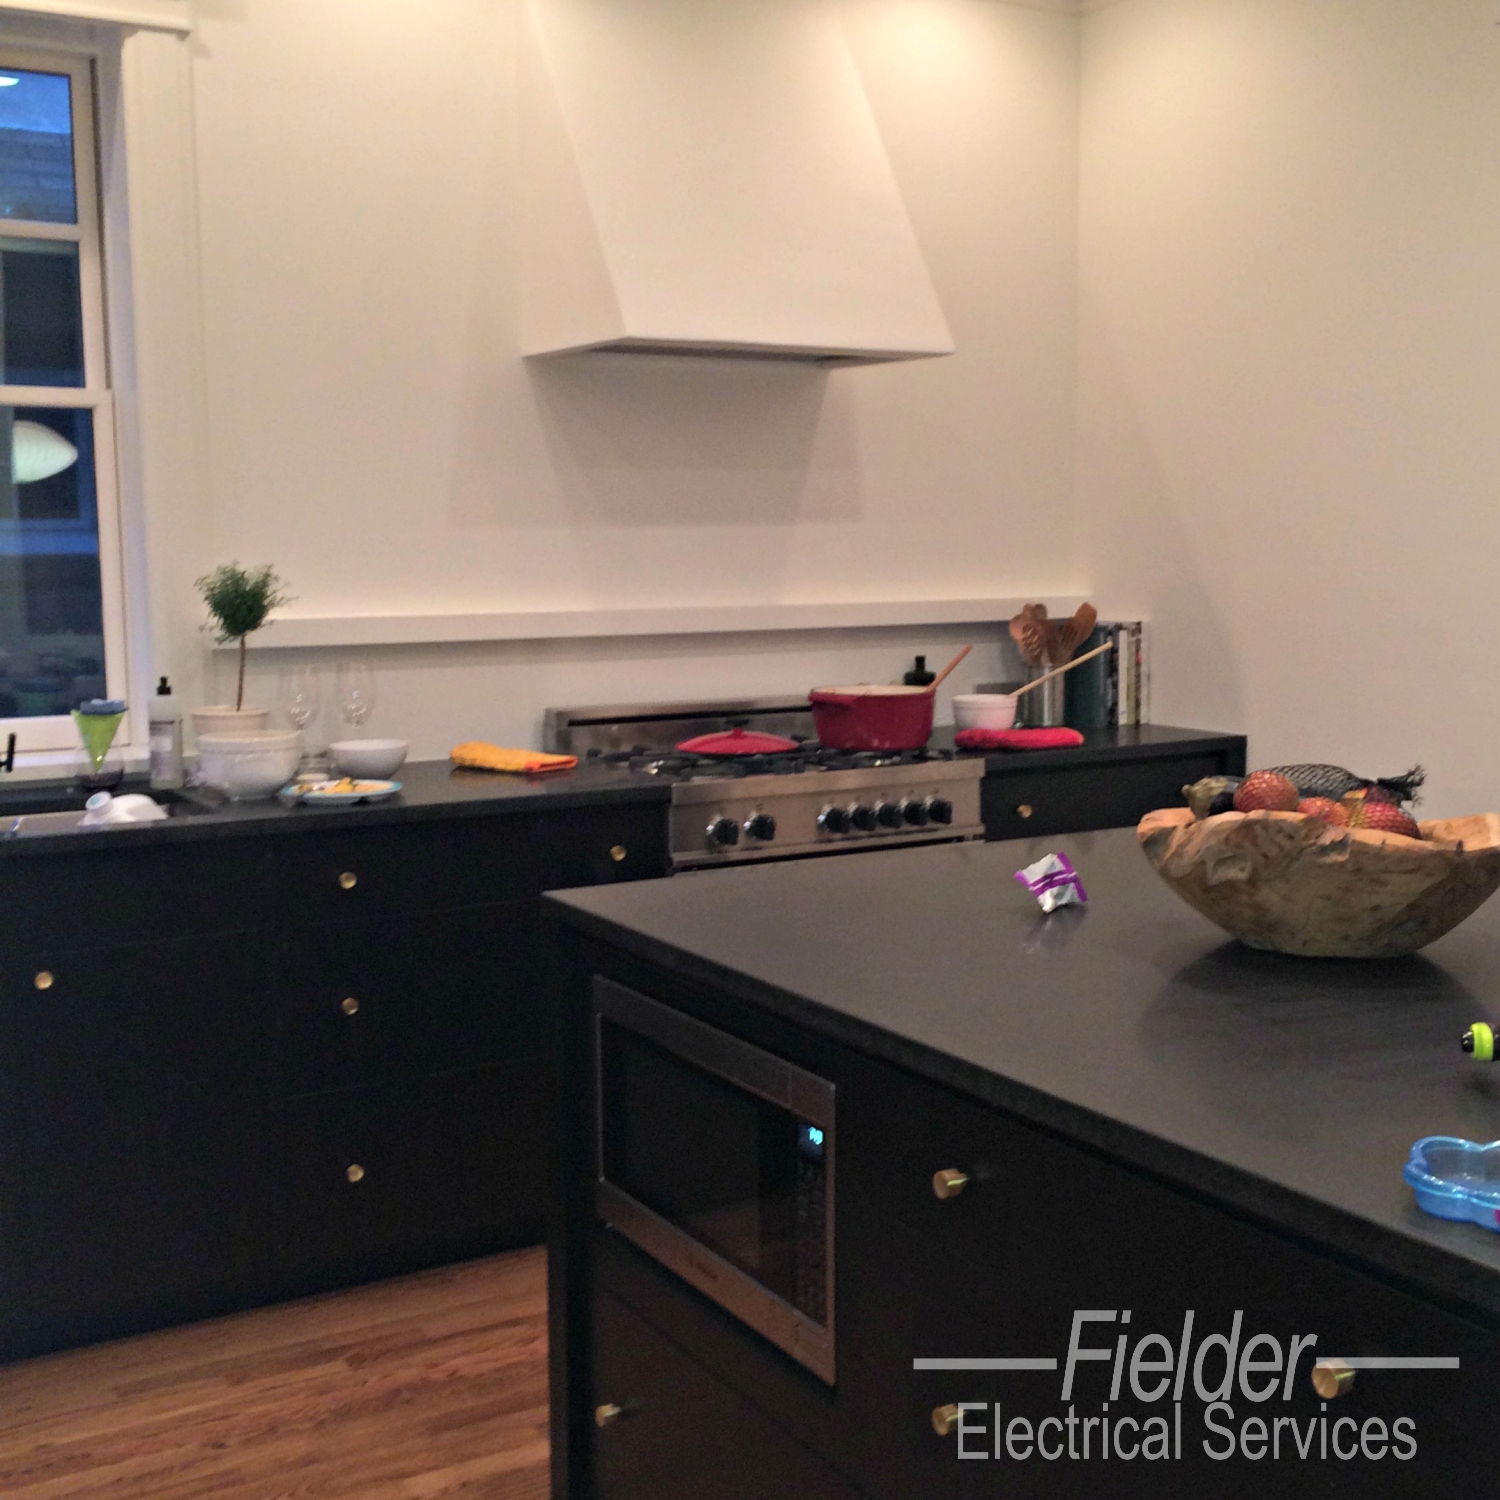 Kitchen Electrical Services Kitchen Lighting Appliances